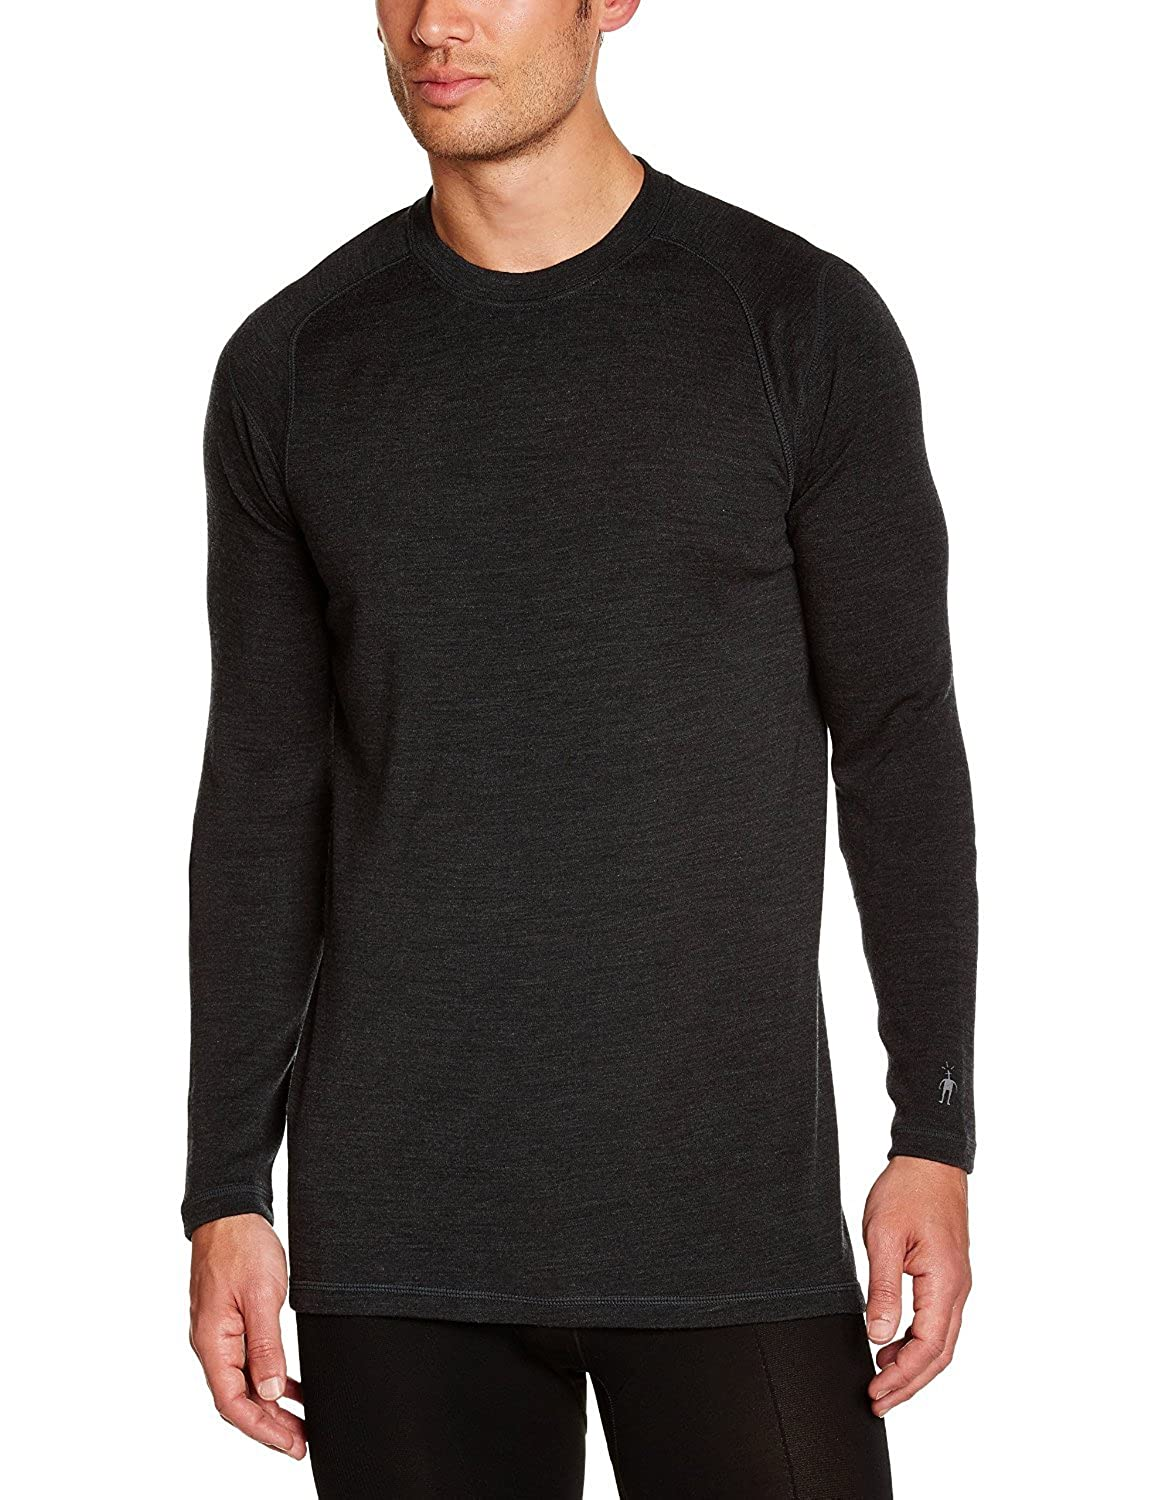 Smartwool Men's Merino 250 Base Layer Crew SS600-010